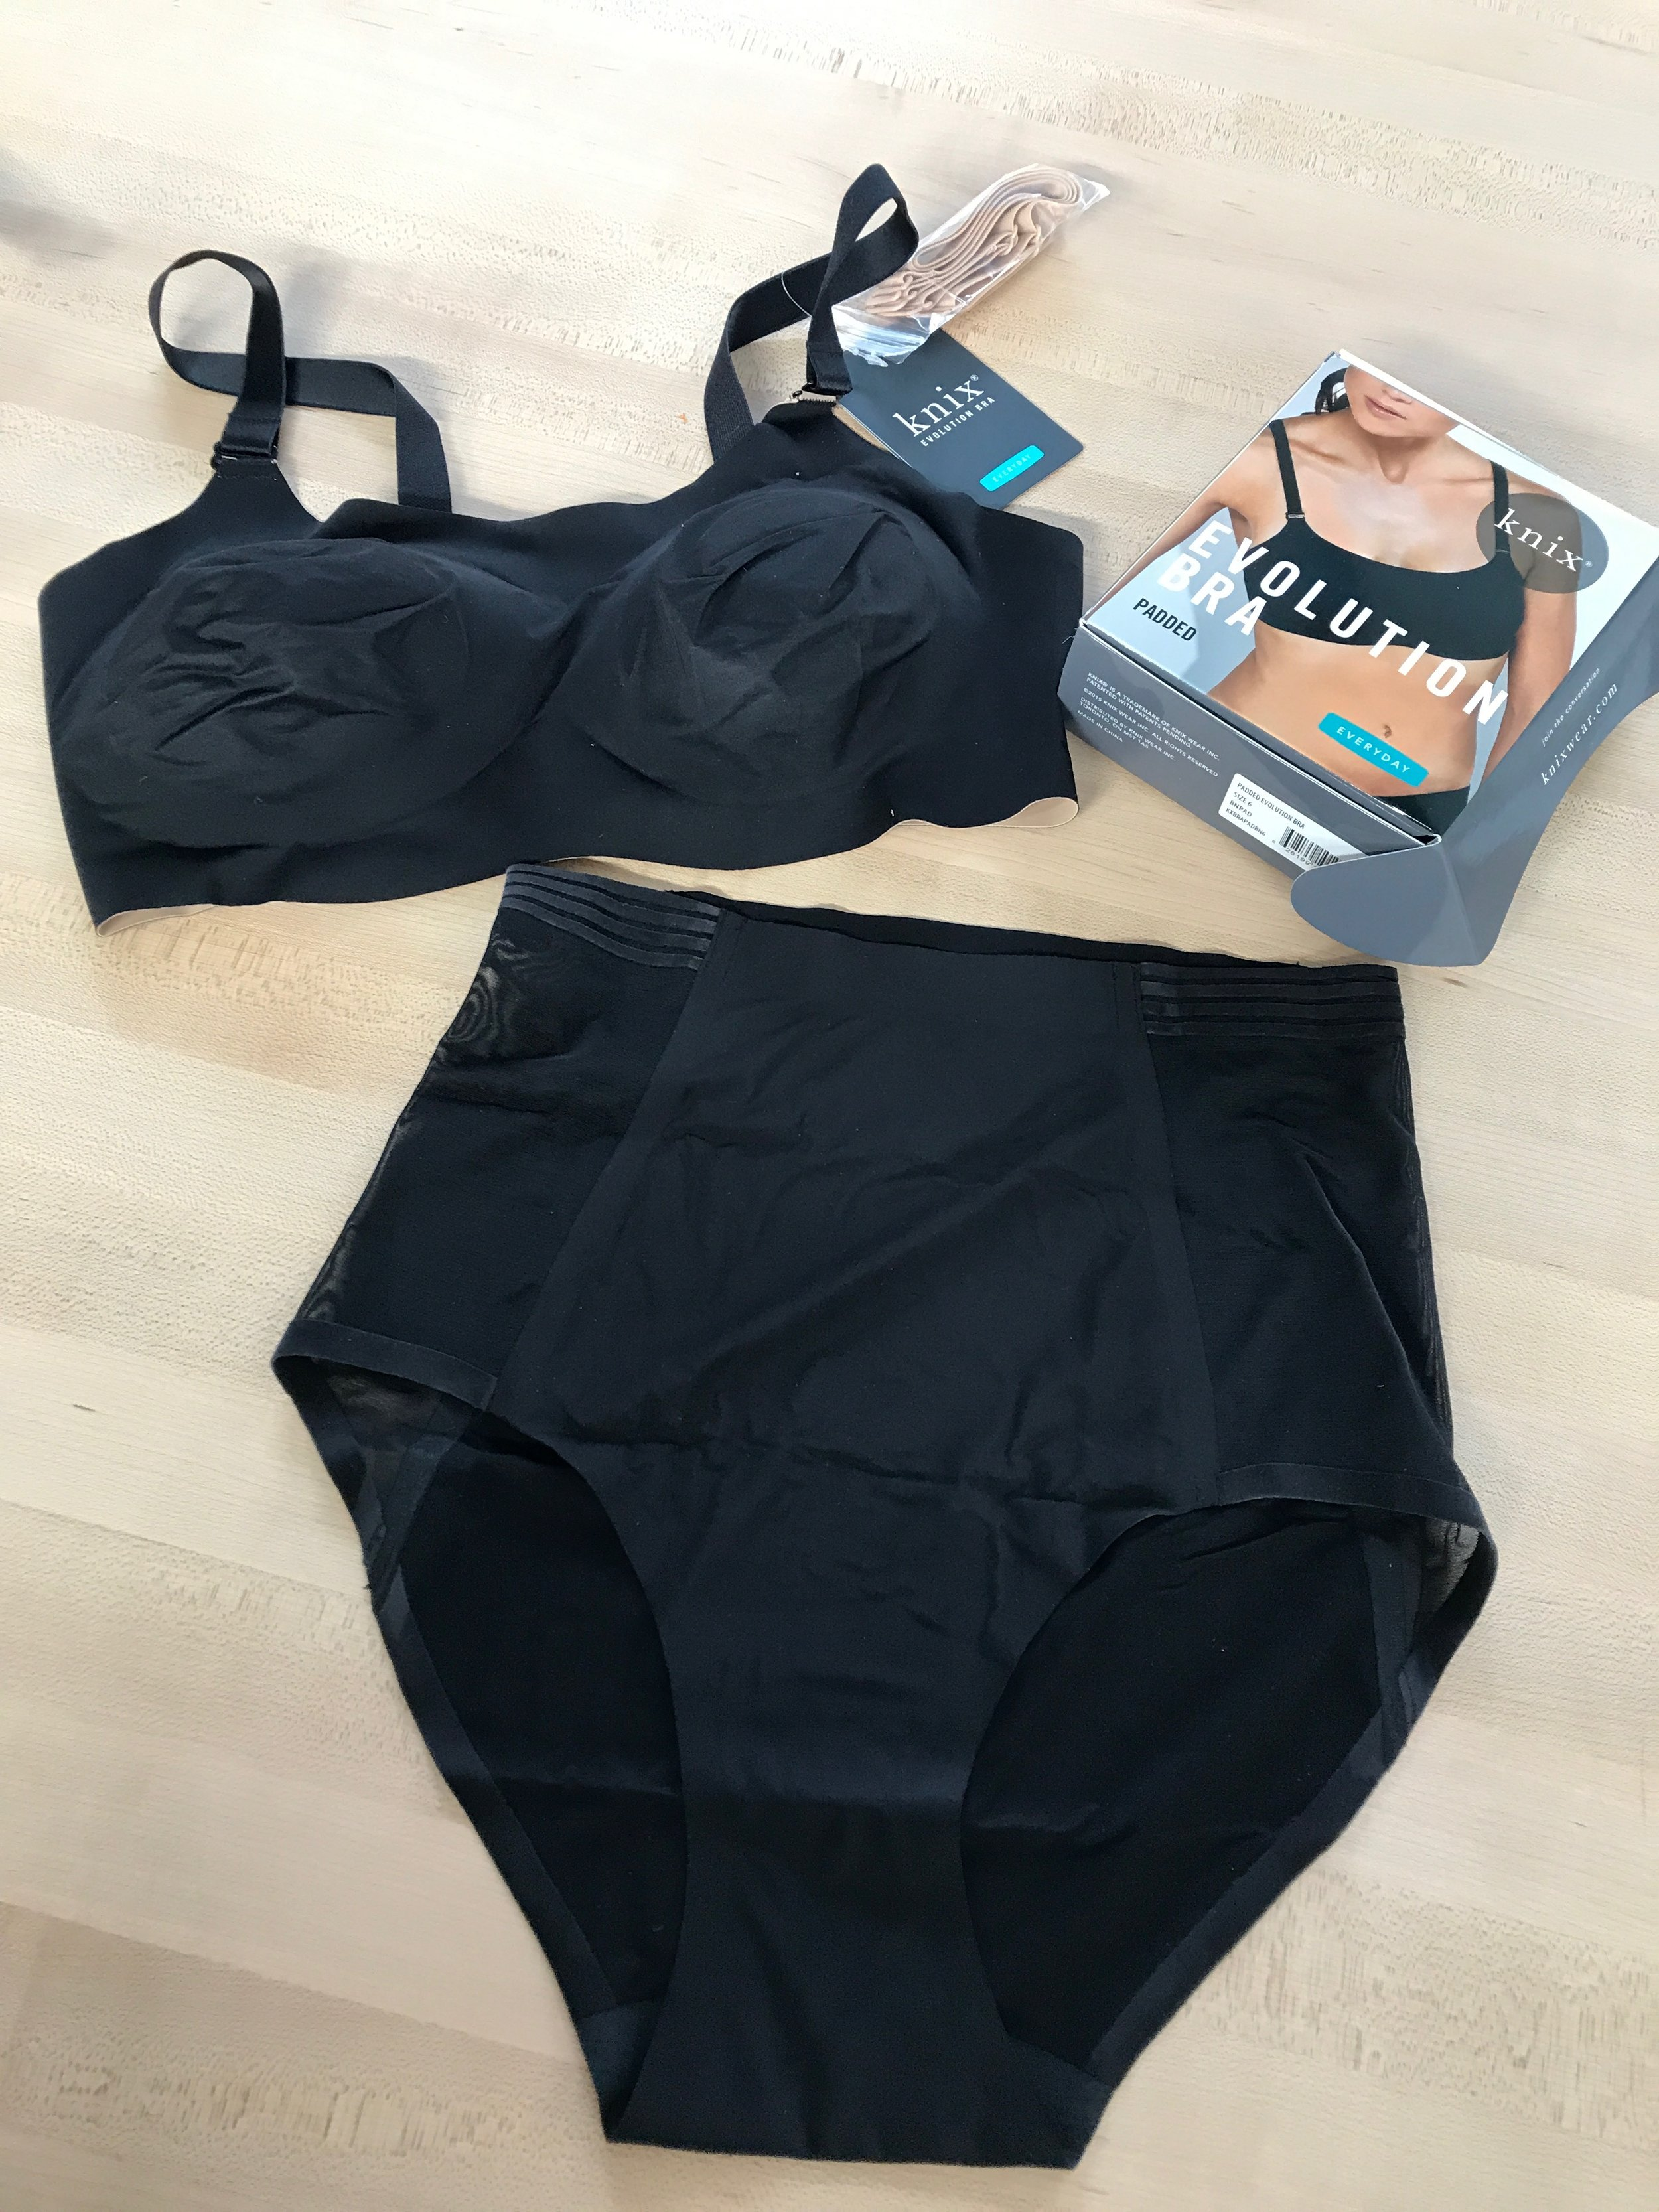 Knixwear Padded Evolution Bra and Luxe High Rise Briefs.